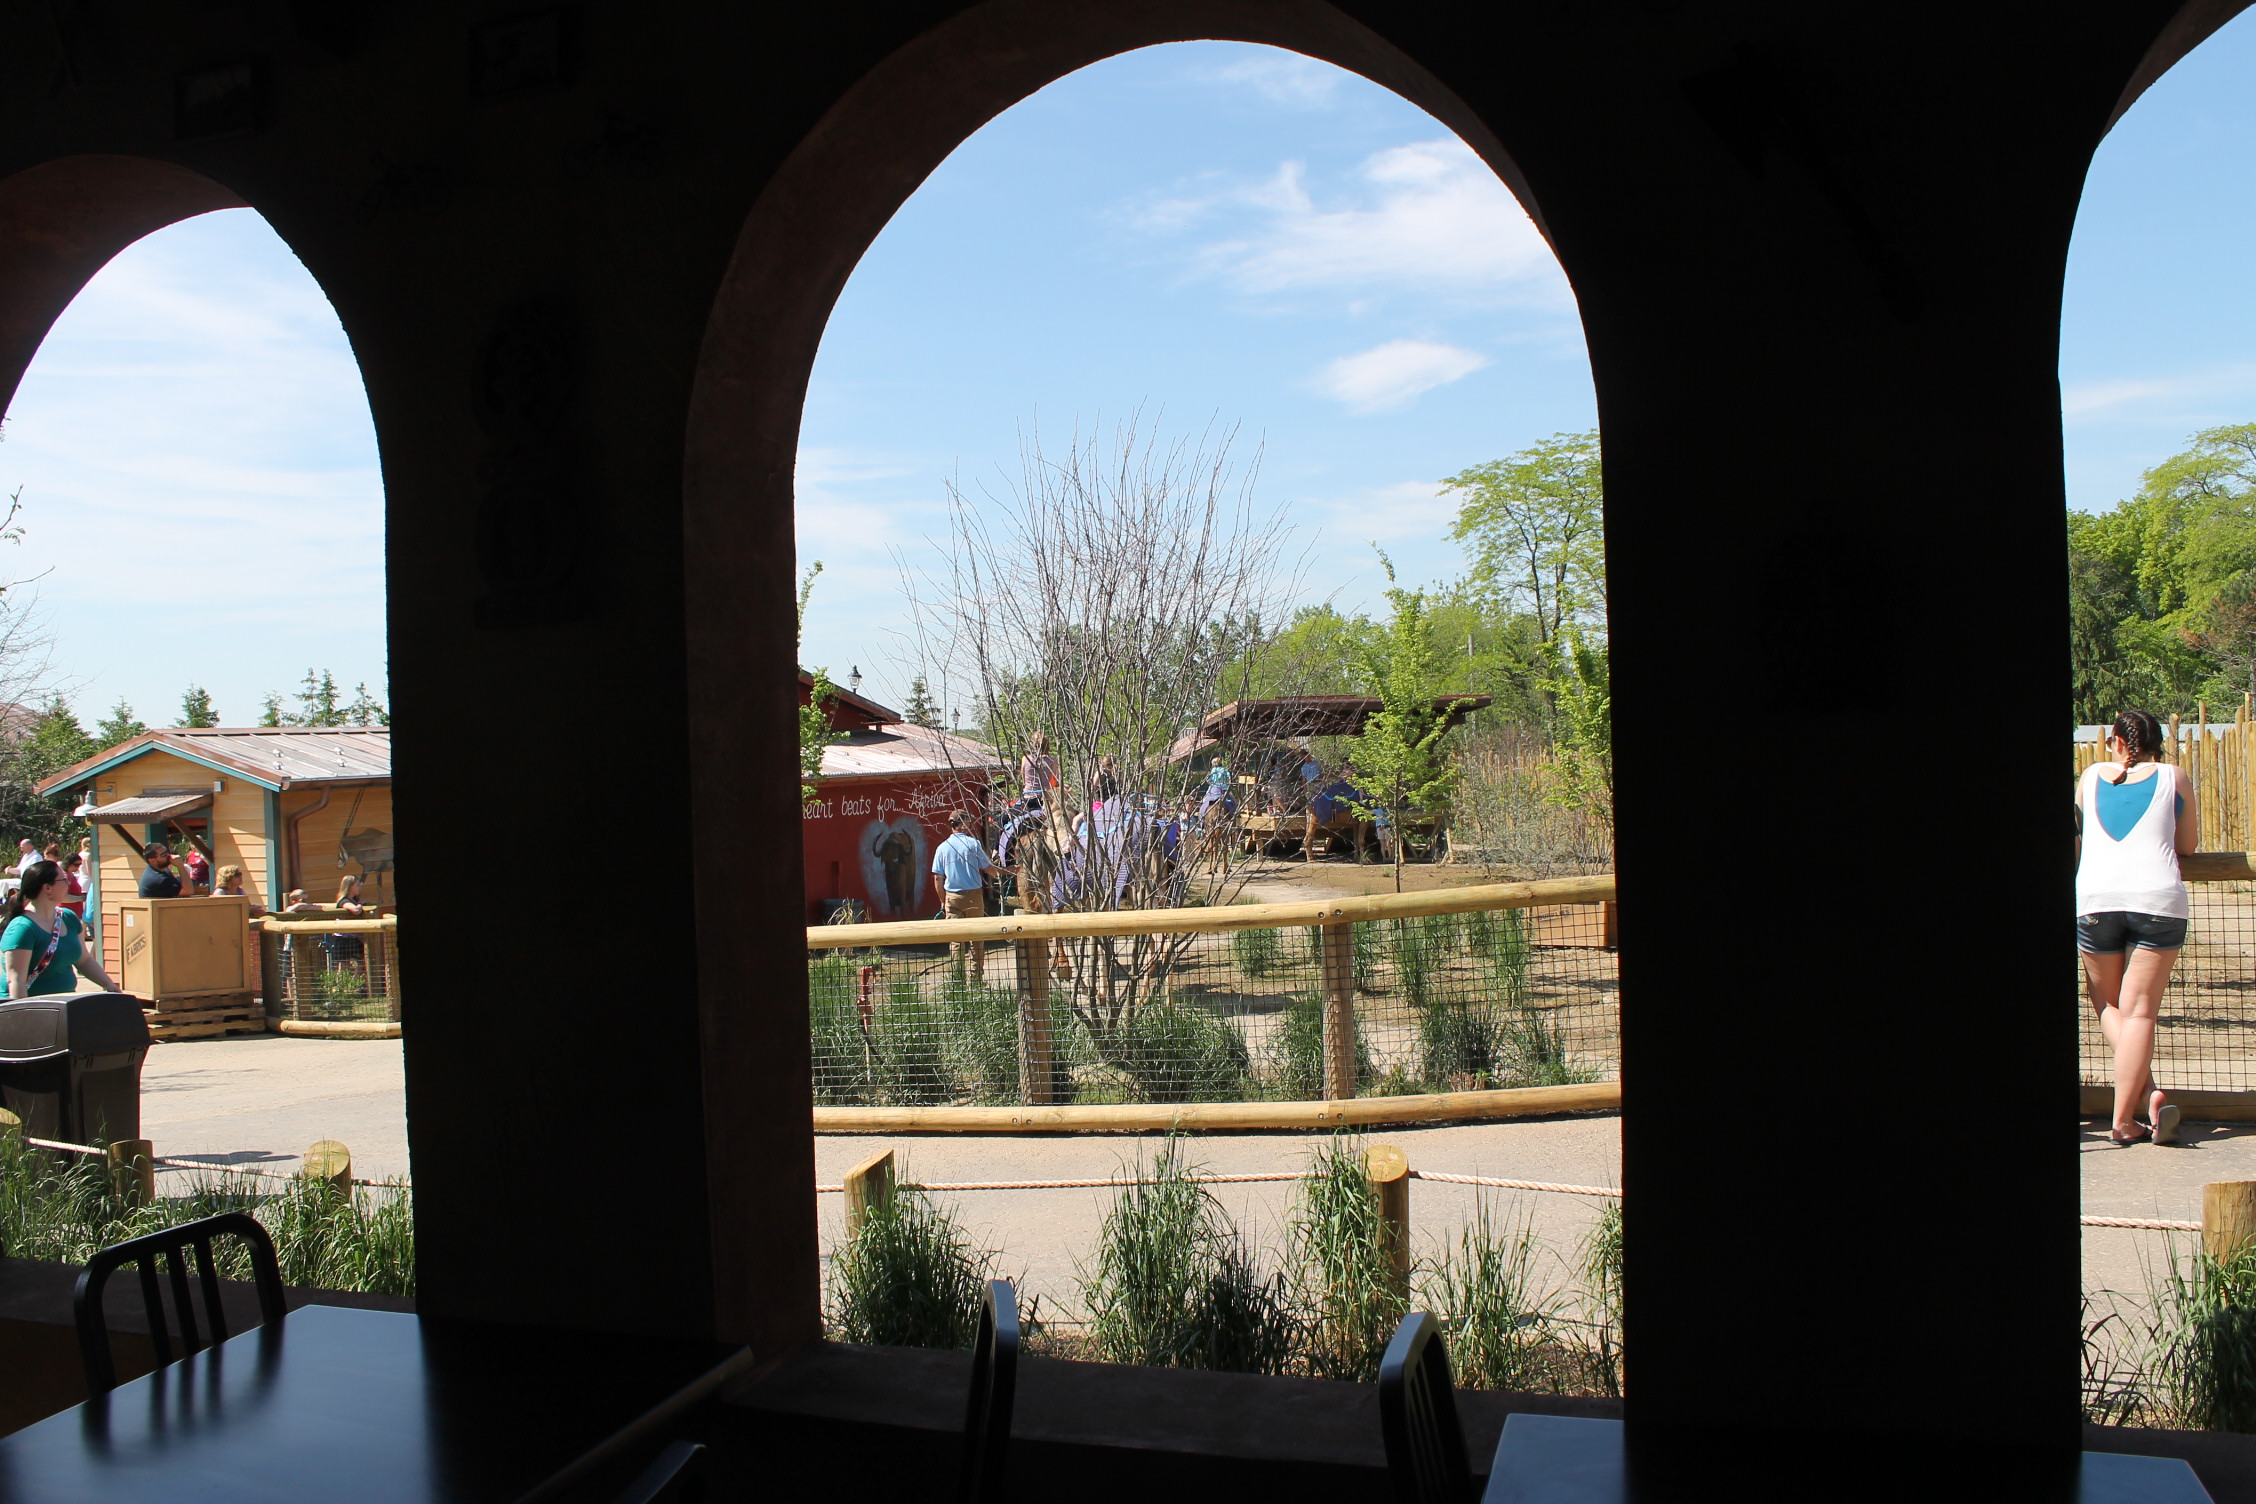 View from the other seating area into the camel ride yard.